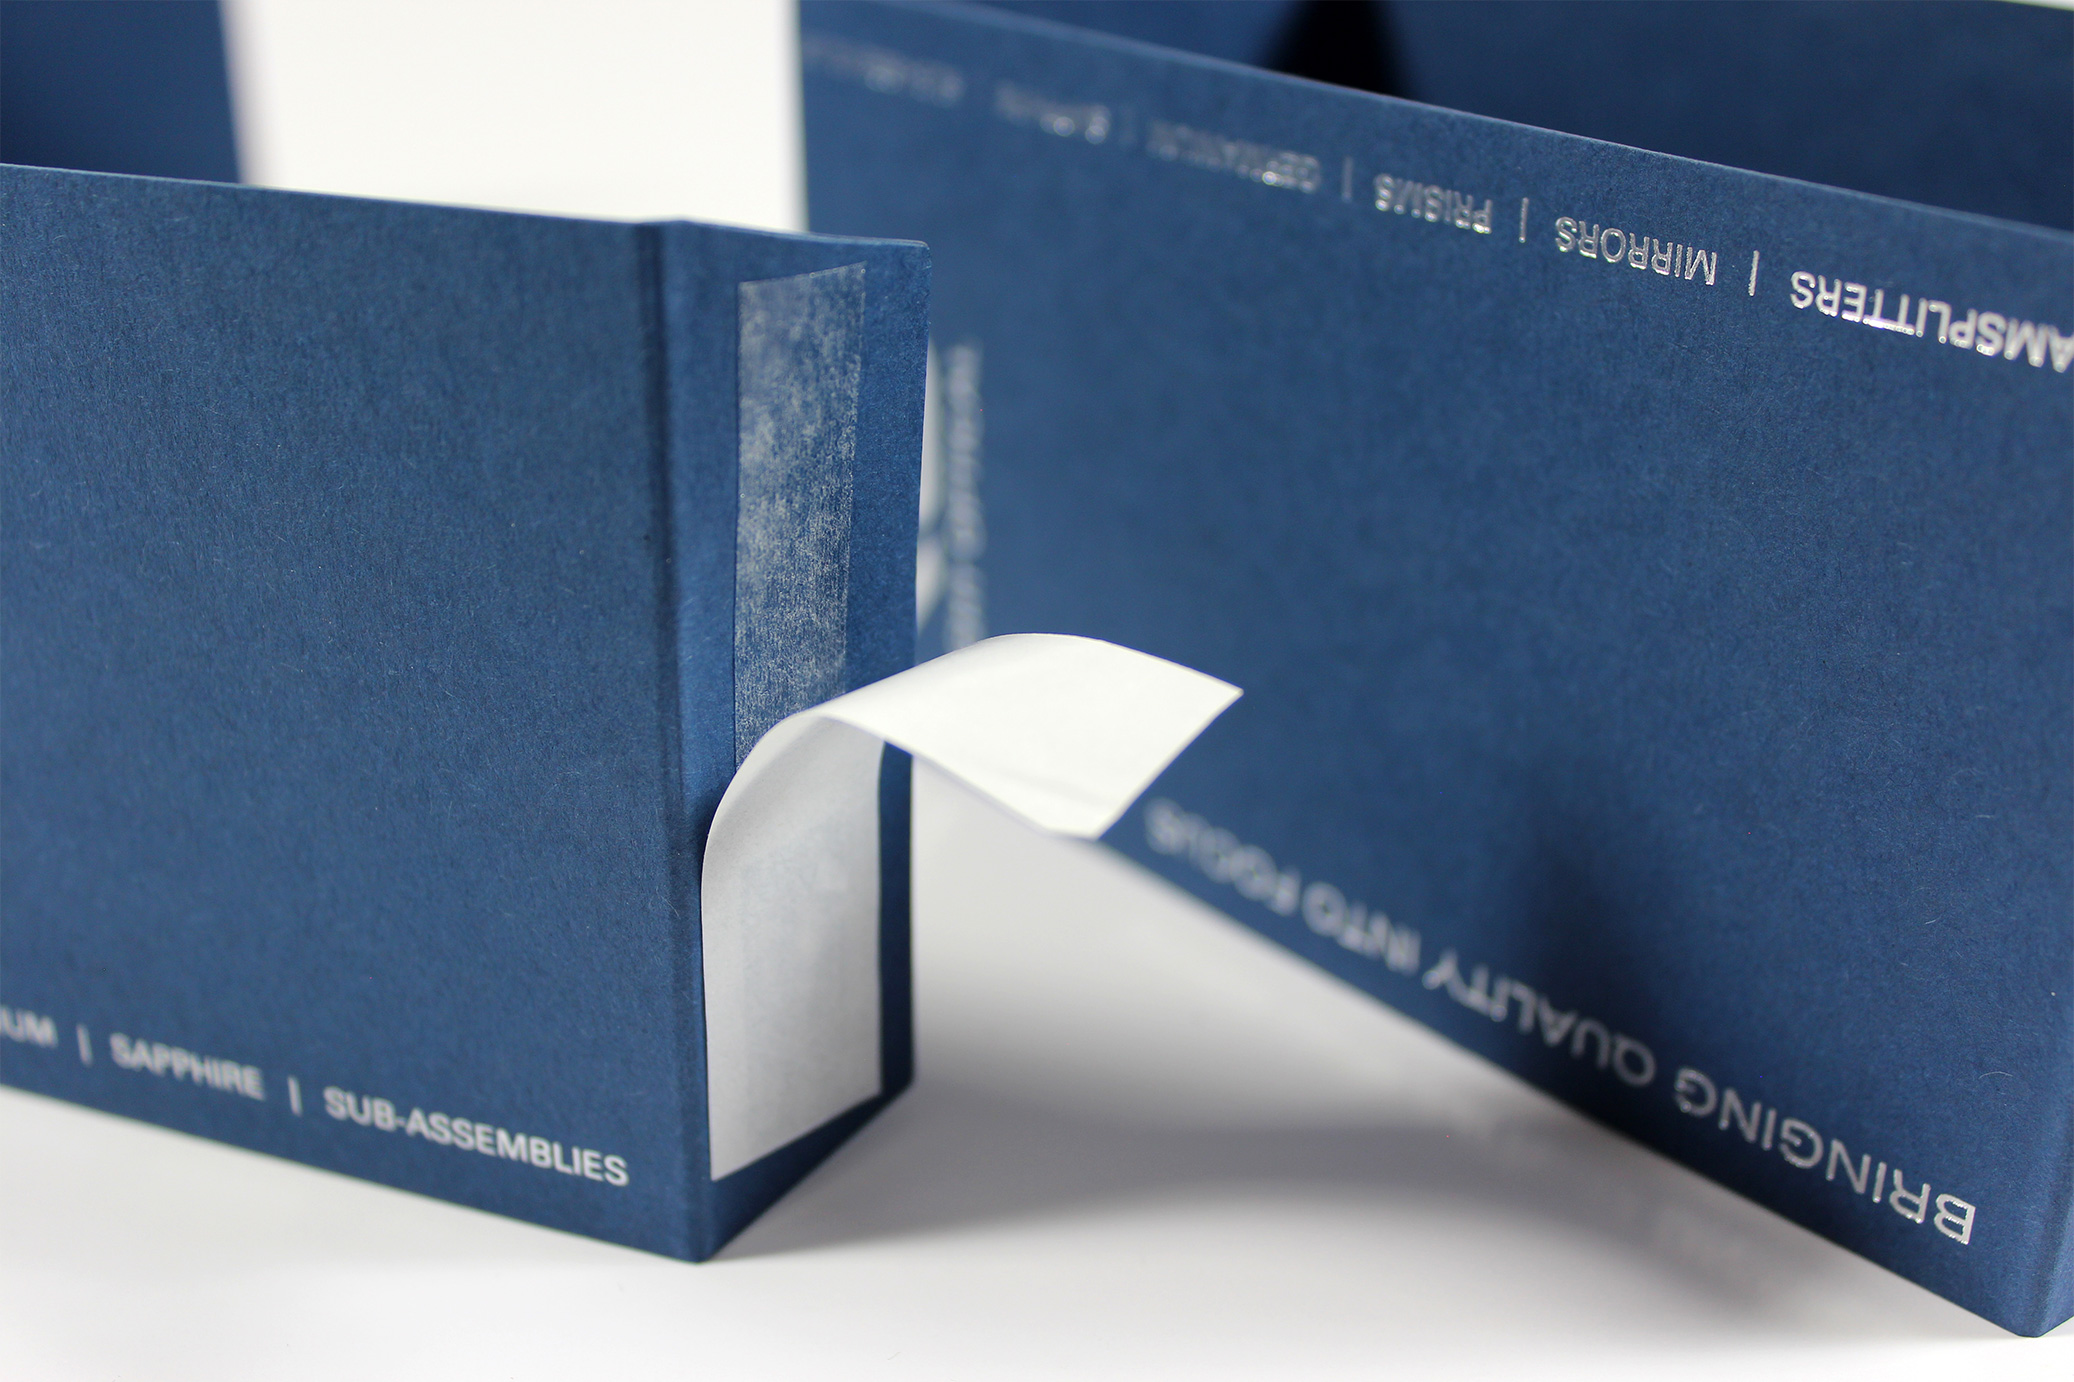 Silver foiled sleeve using blue card and taped on flap for Knight Optical - close-up of taped flap